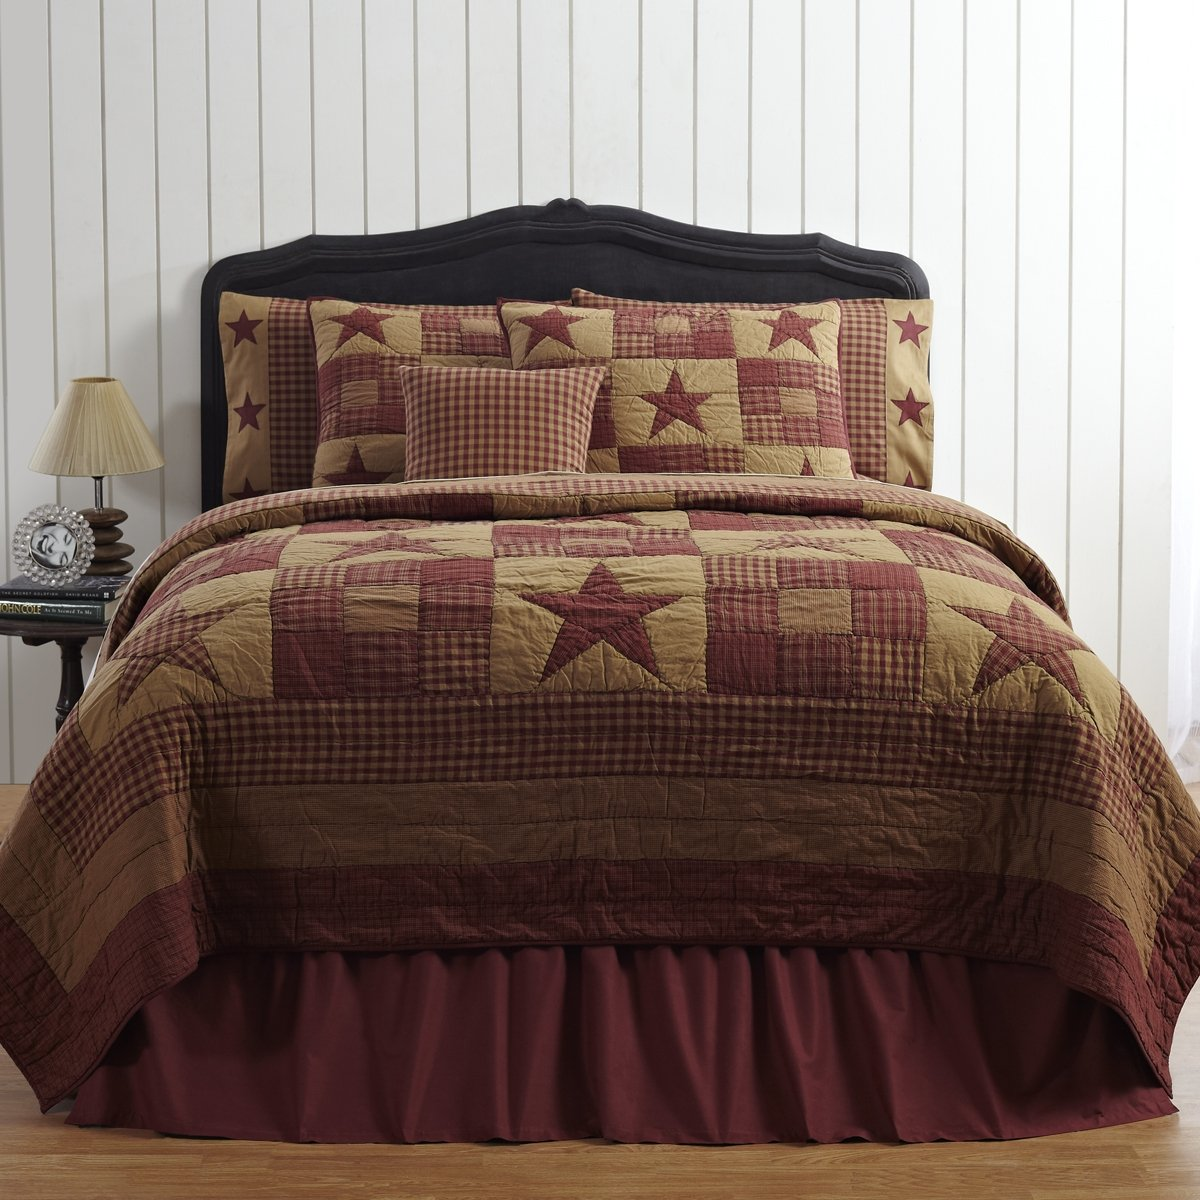 VHC Brands Classic Country Primitive Bedding - Ninepatch Star Red Quilt, Twin, Burgundy